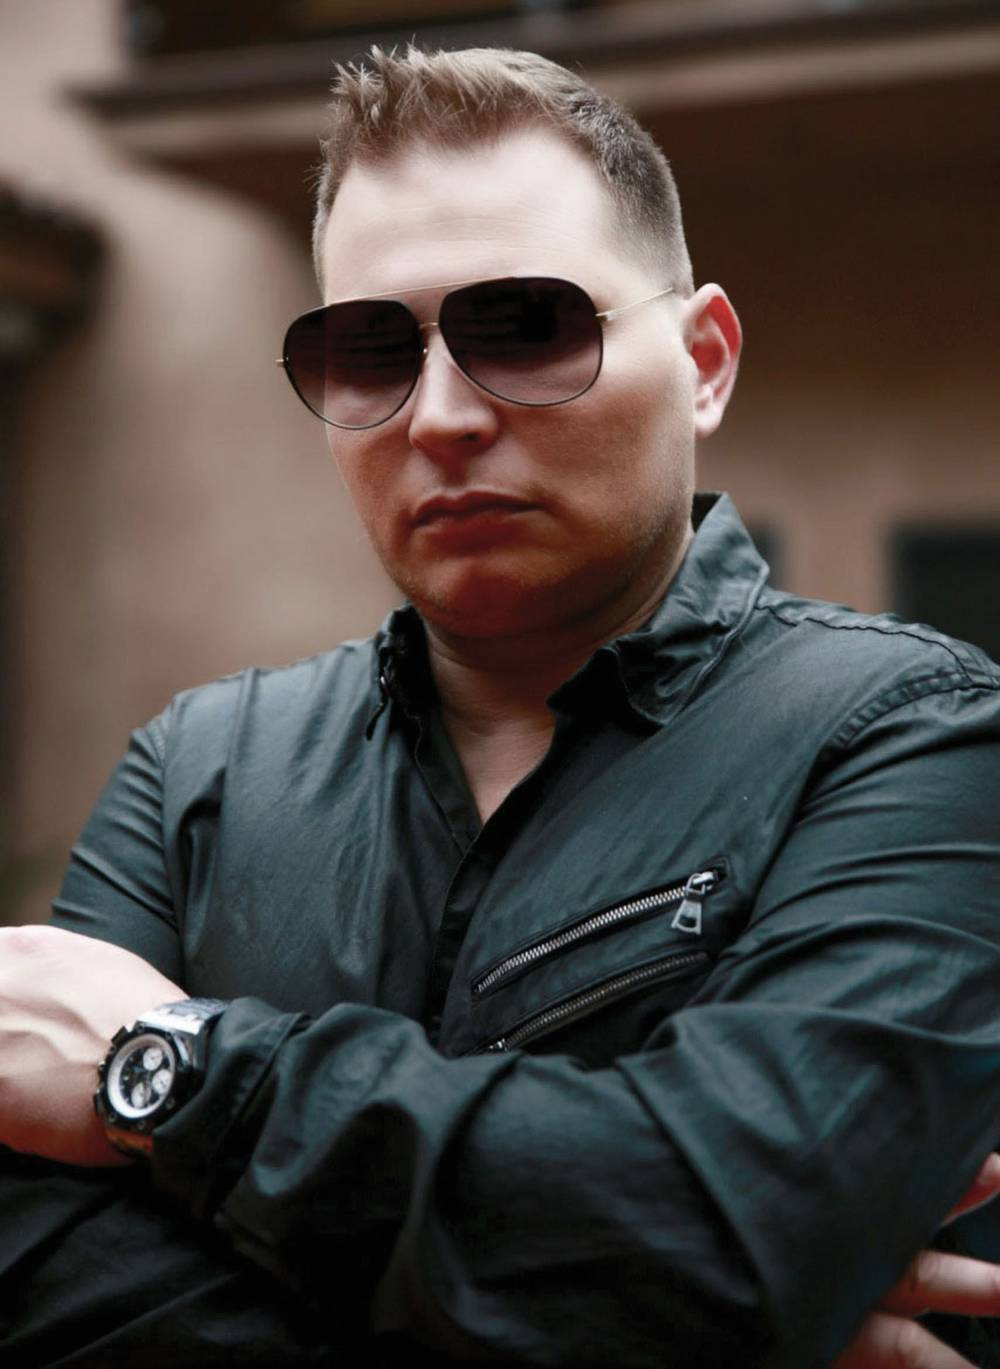 Megaproducer Scott Storch Visits Lax And Plans A Proper